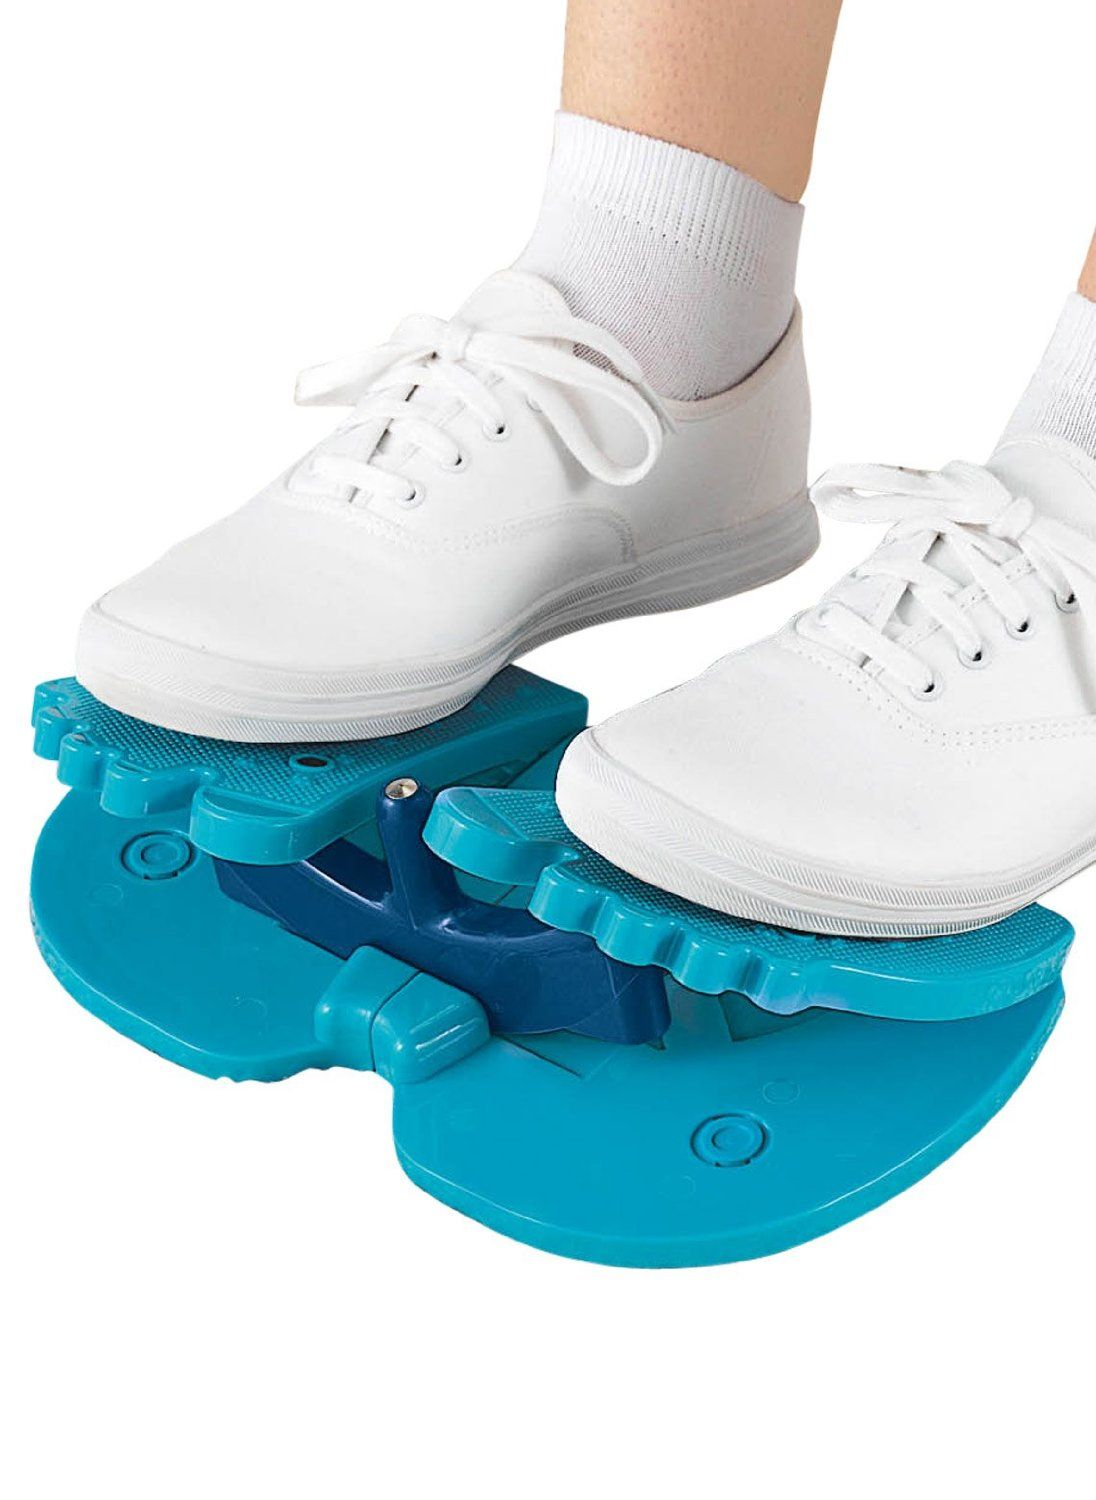 North American Healthcare Sitting Stepper Review Read my